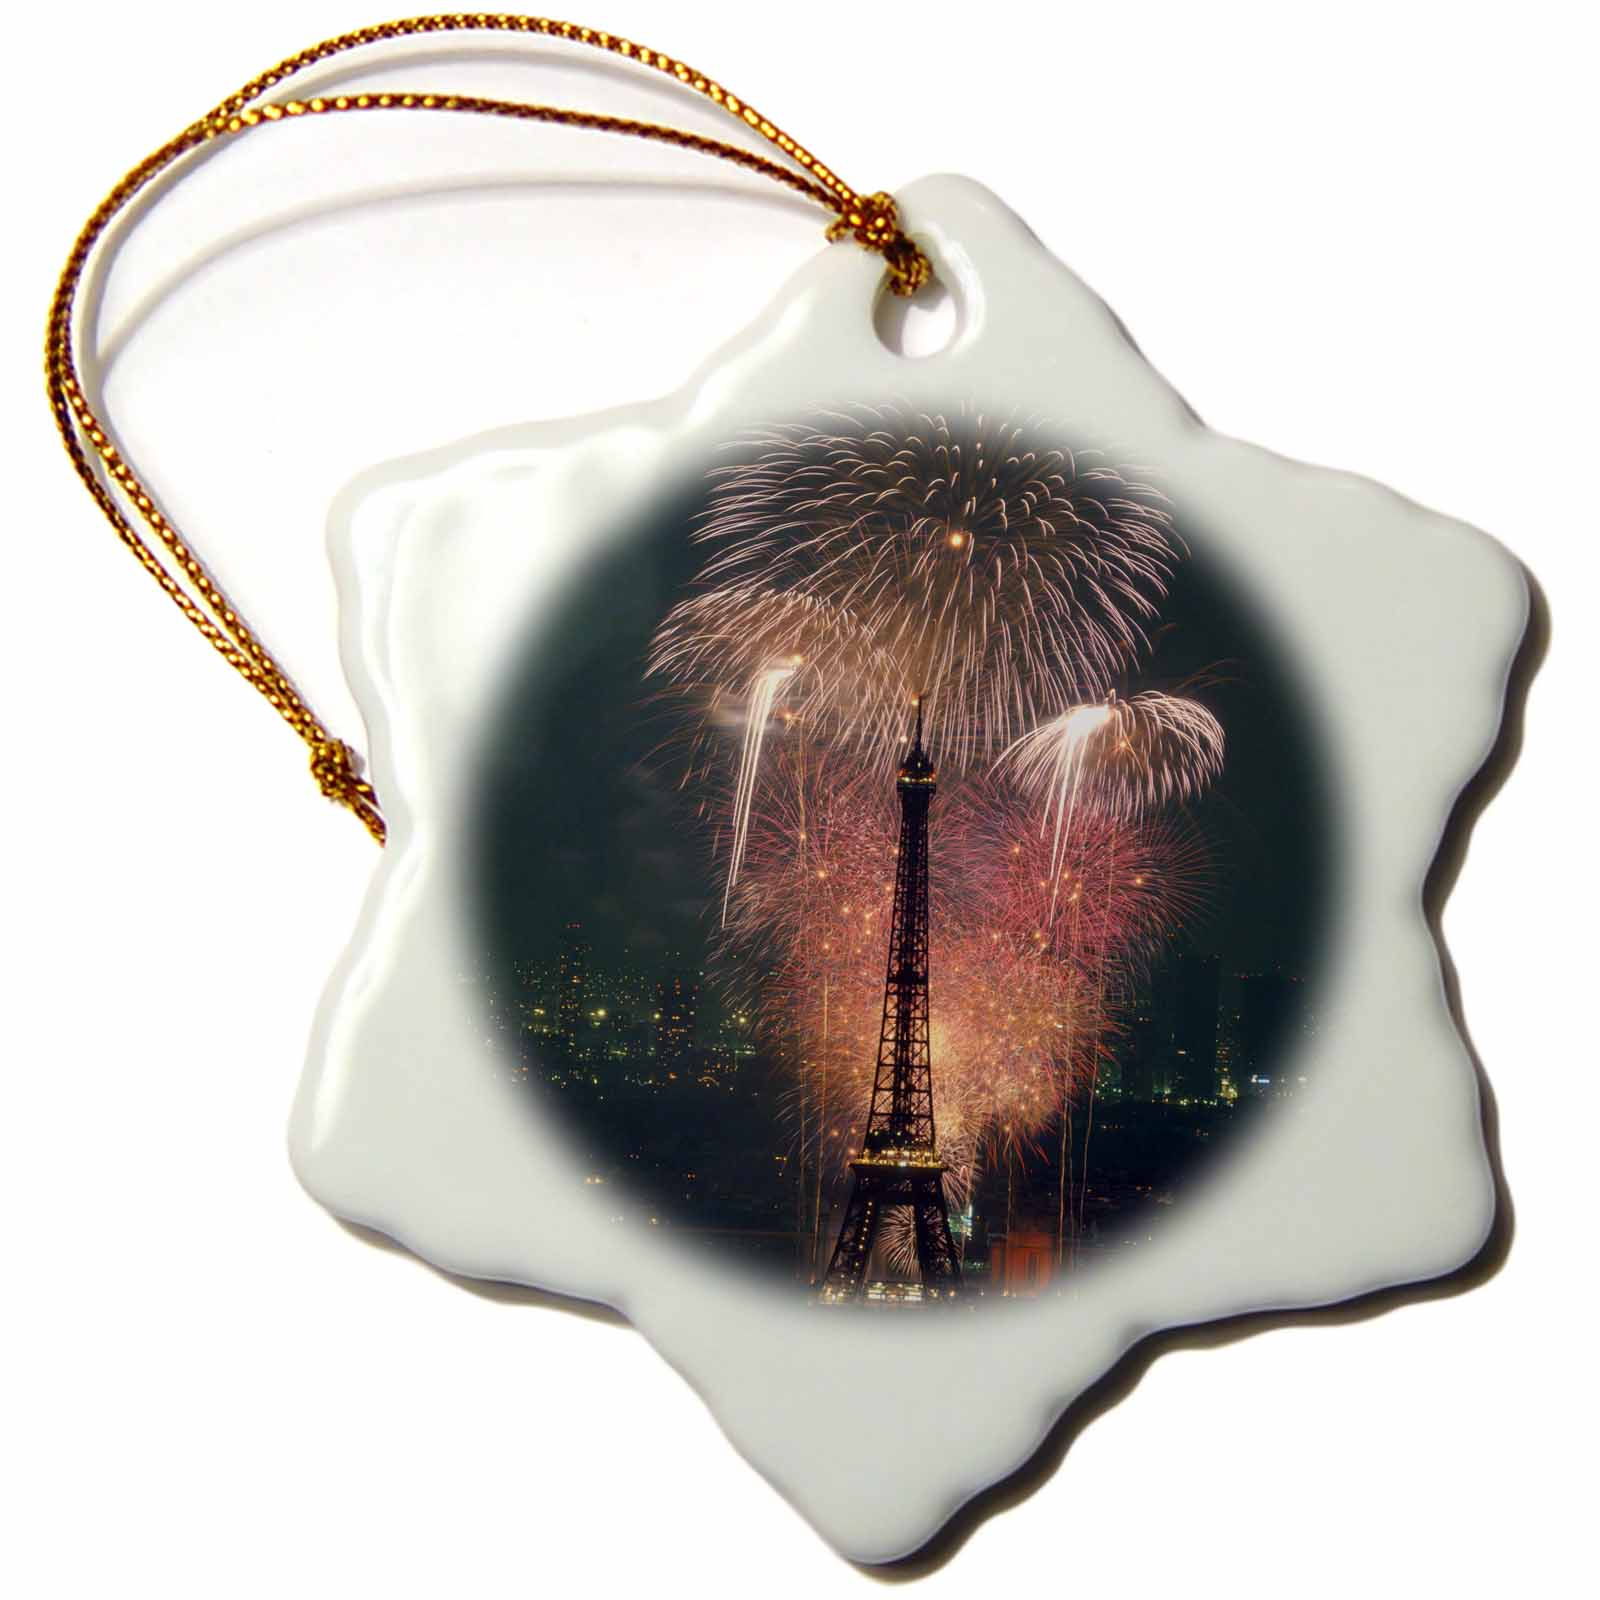 3dRose Fireworks, Eiffel Tower, Paris, France - EU09 ABA0106 - Alex Bartel, Snowflake Ornament, Porcelain, 3-inch